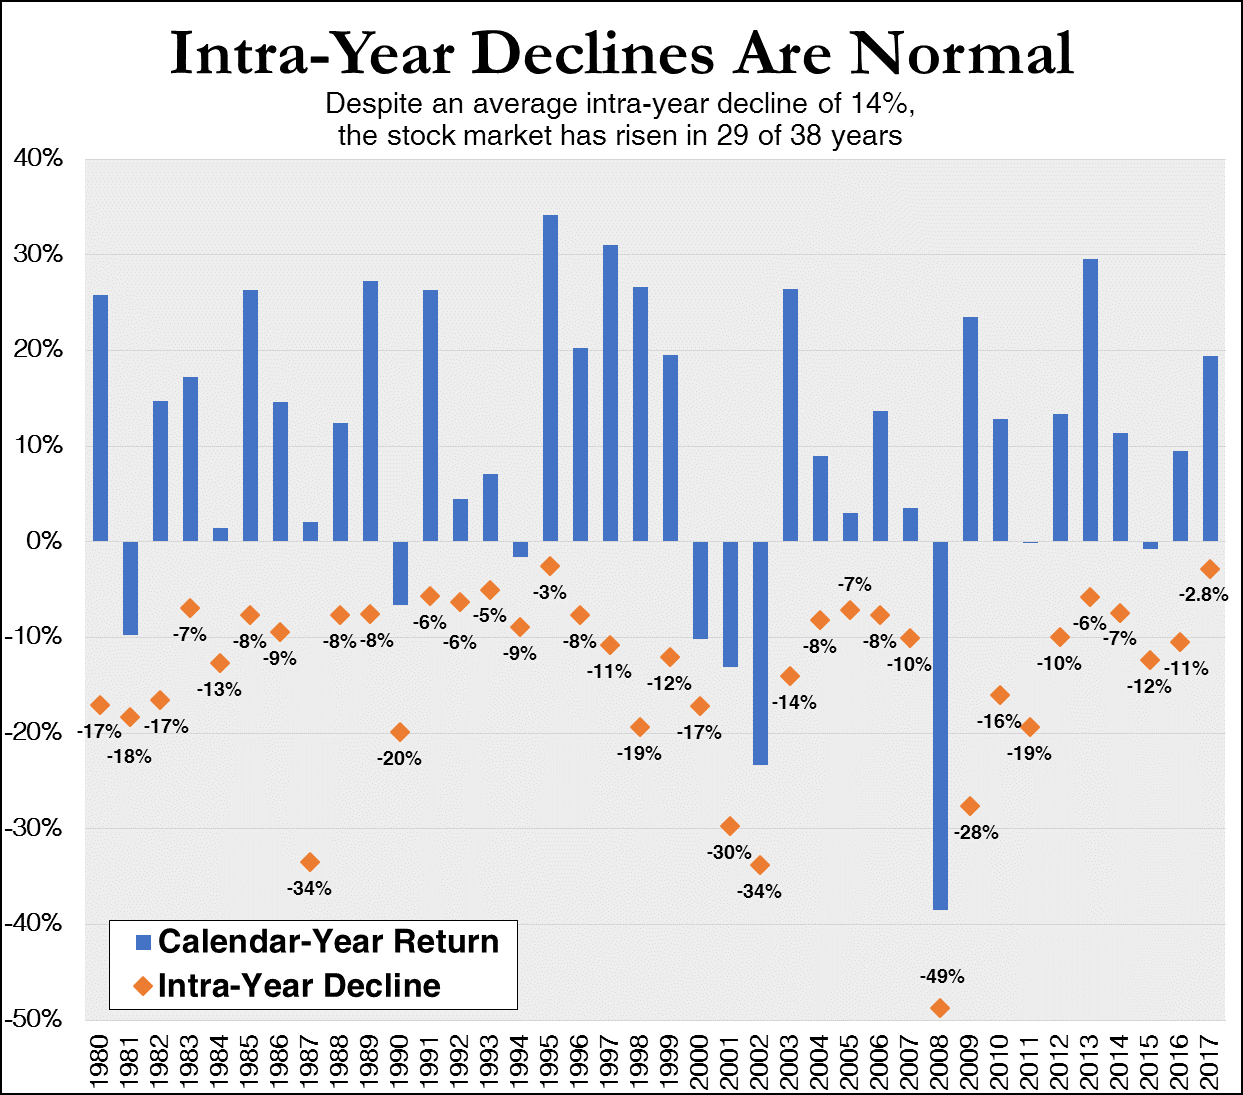 Note: Chart covers calendar years from 1980 through 2017 and is based on S&P 500 Index returns.  Sources: Bloomberg, Morningstar.